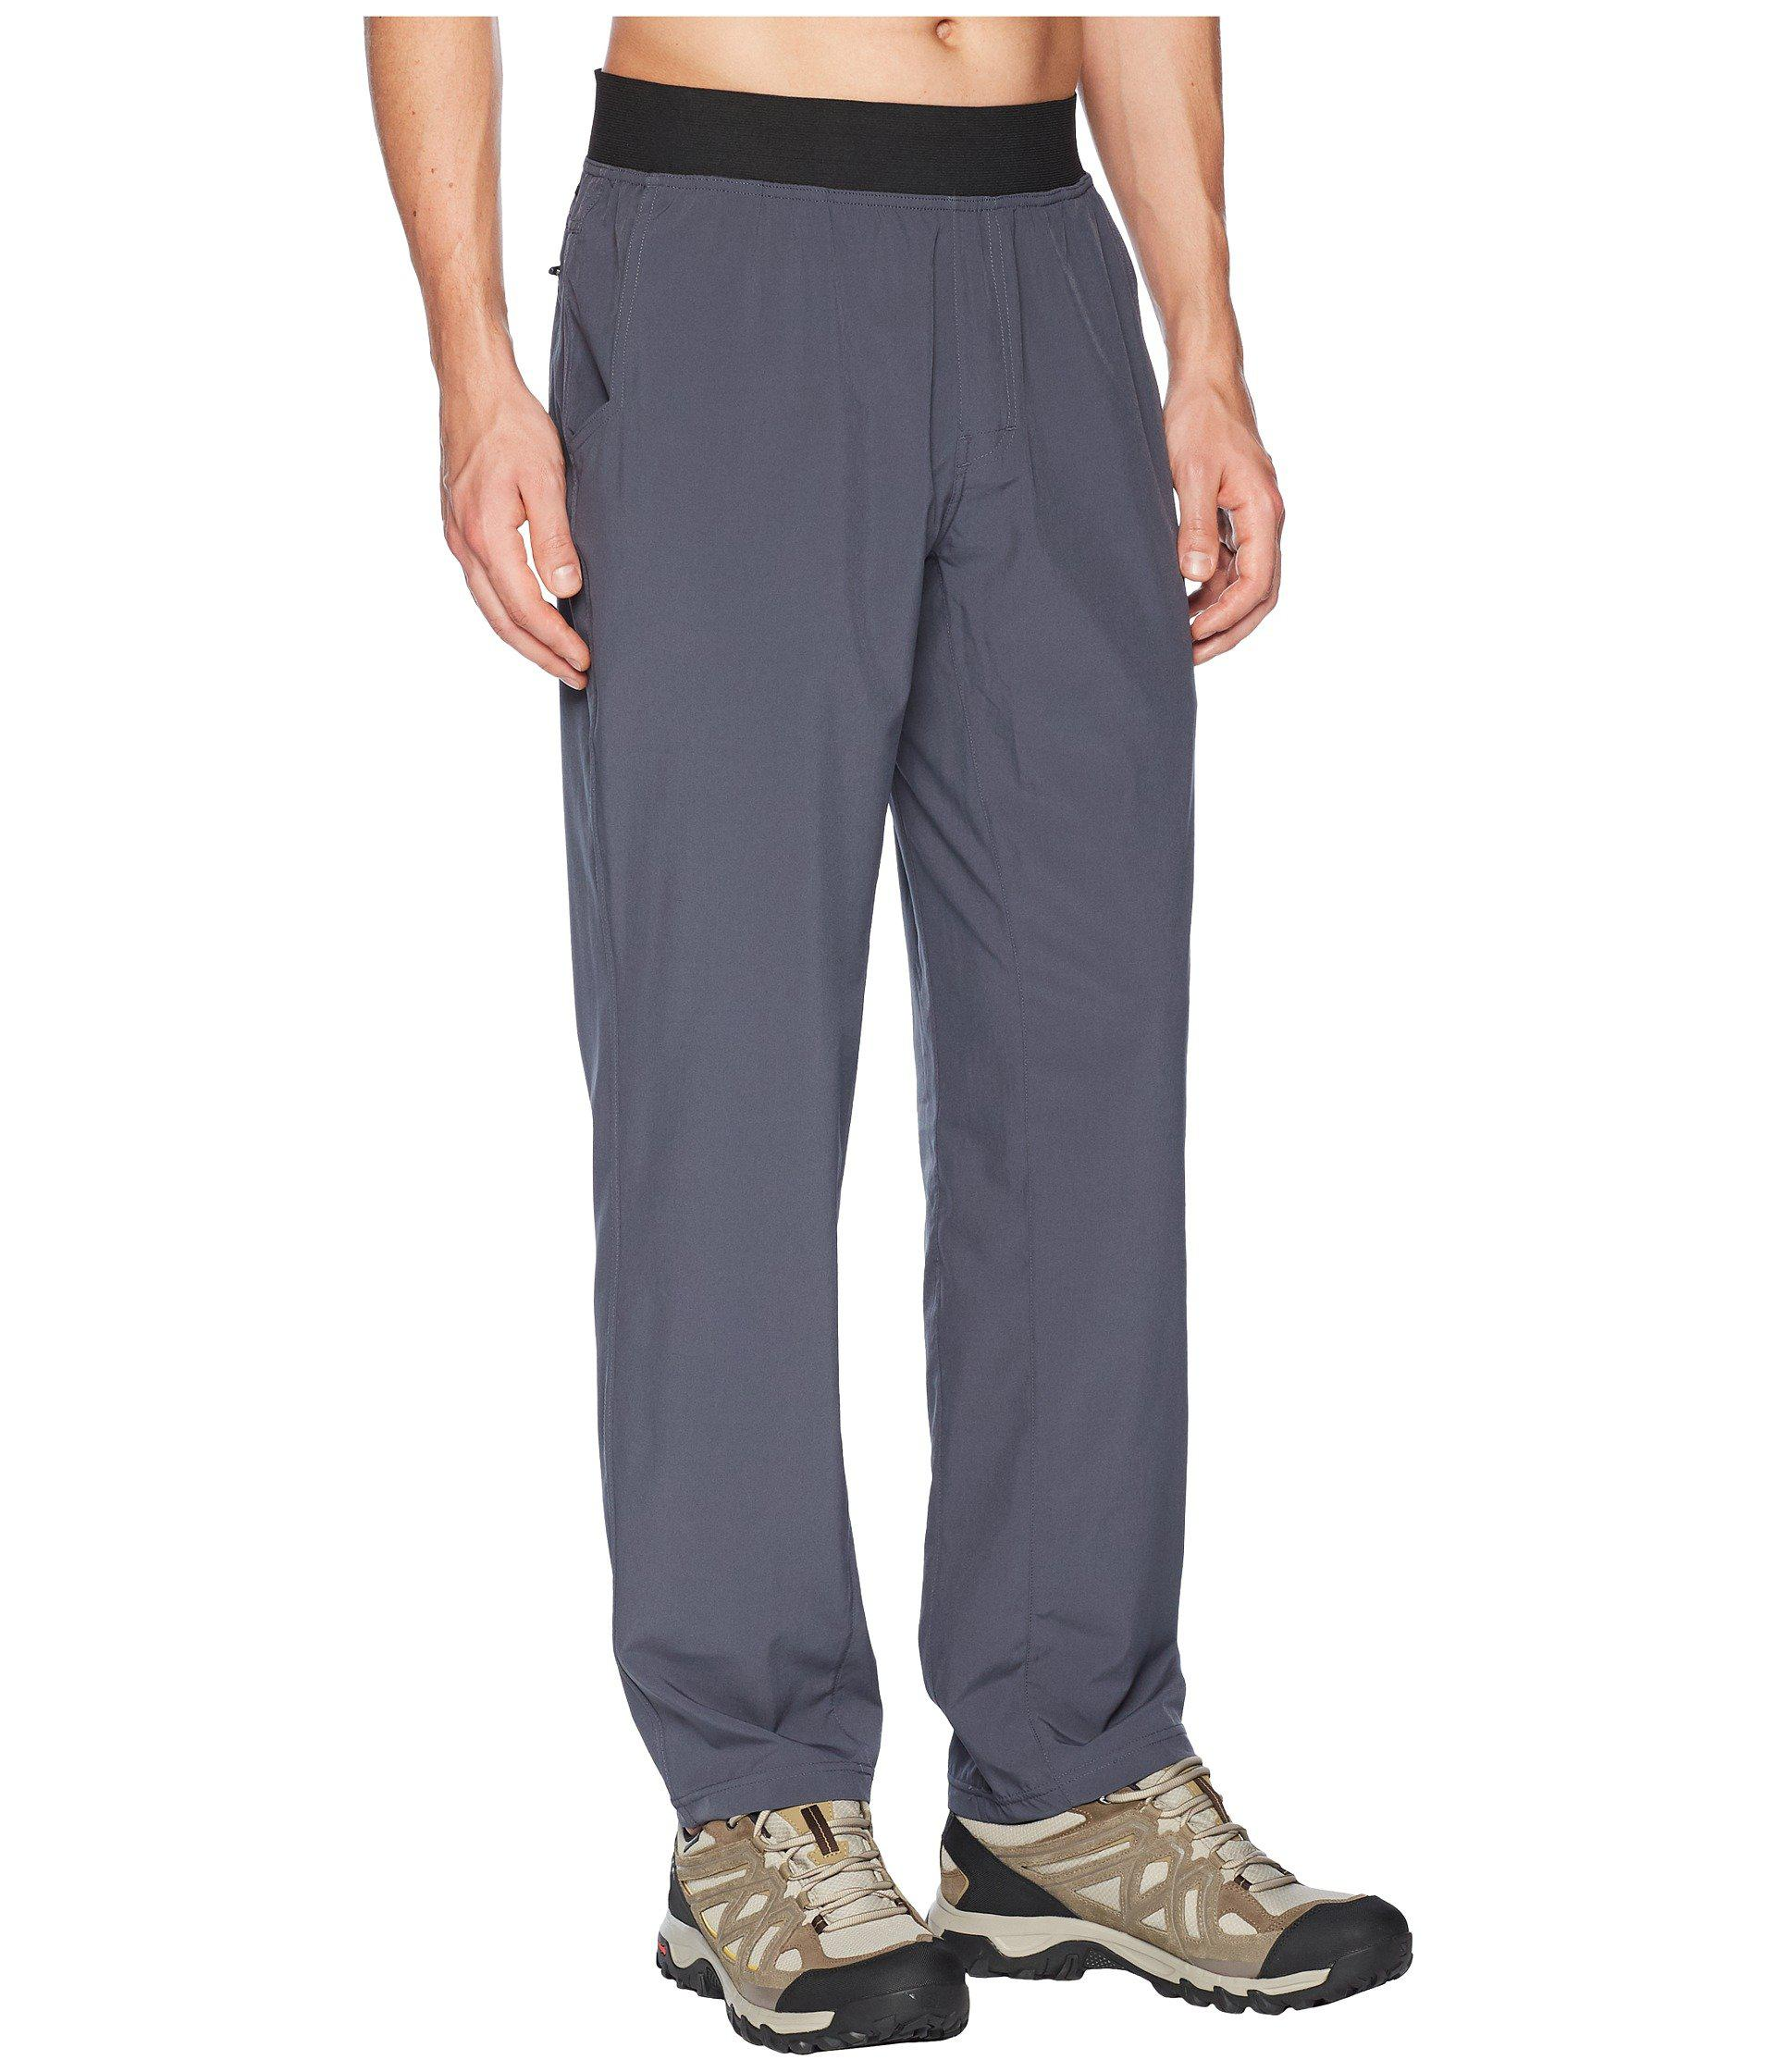 c386efef68 Prana Super Mojo Pant (coal) Men's Casual Pants in Gray for Men - Lyst